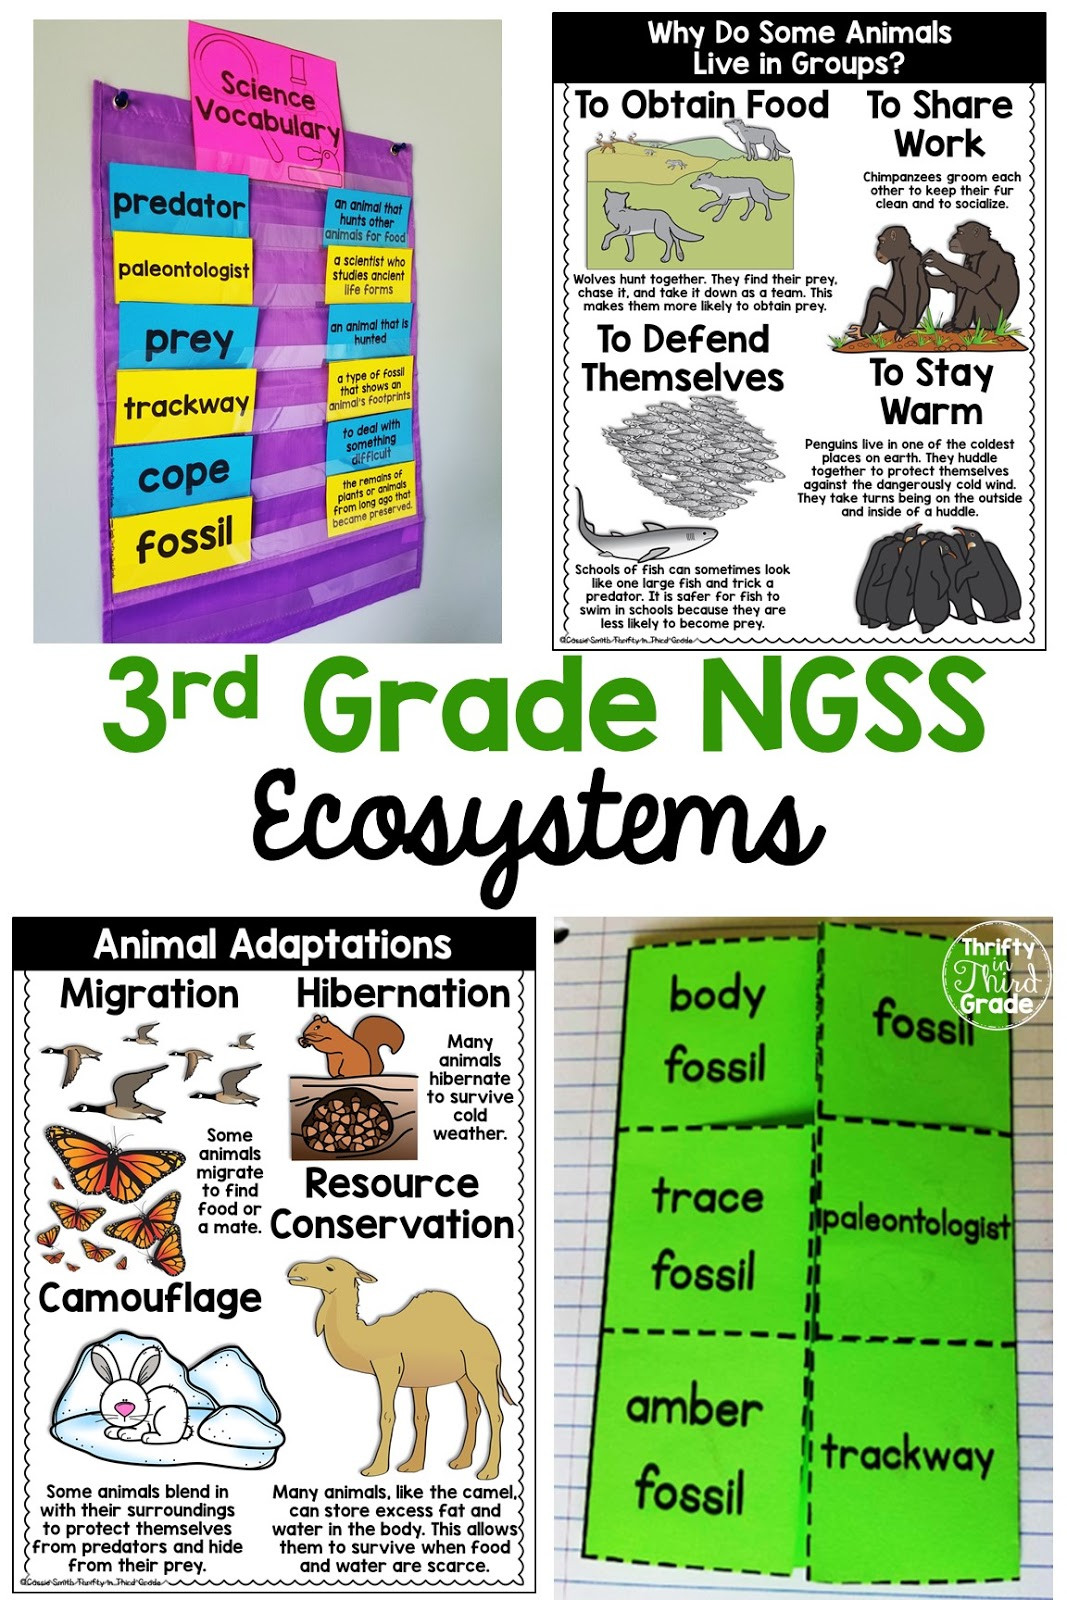 Interdependent Relationships in Ecosystems 3rd Grade NGSS